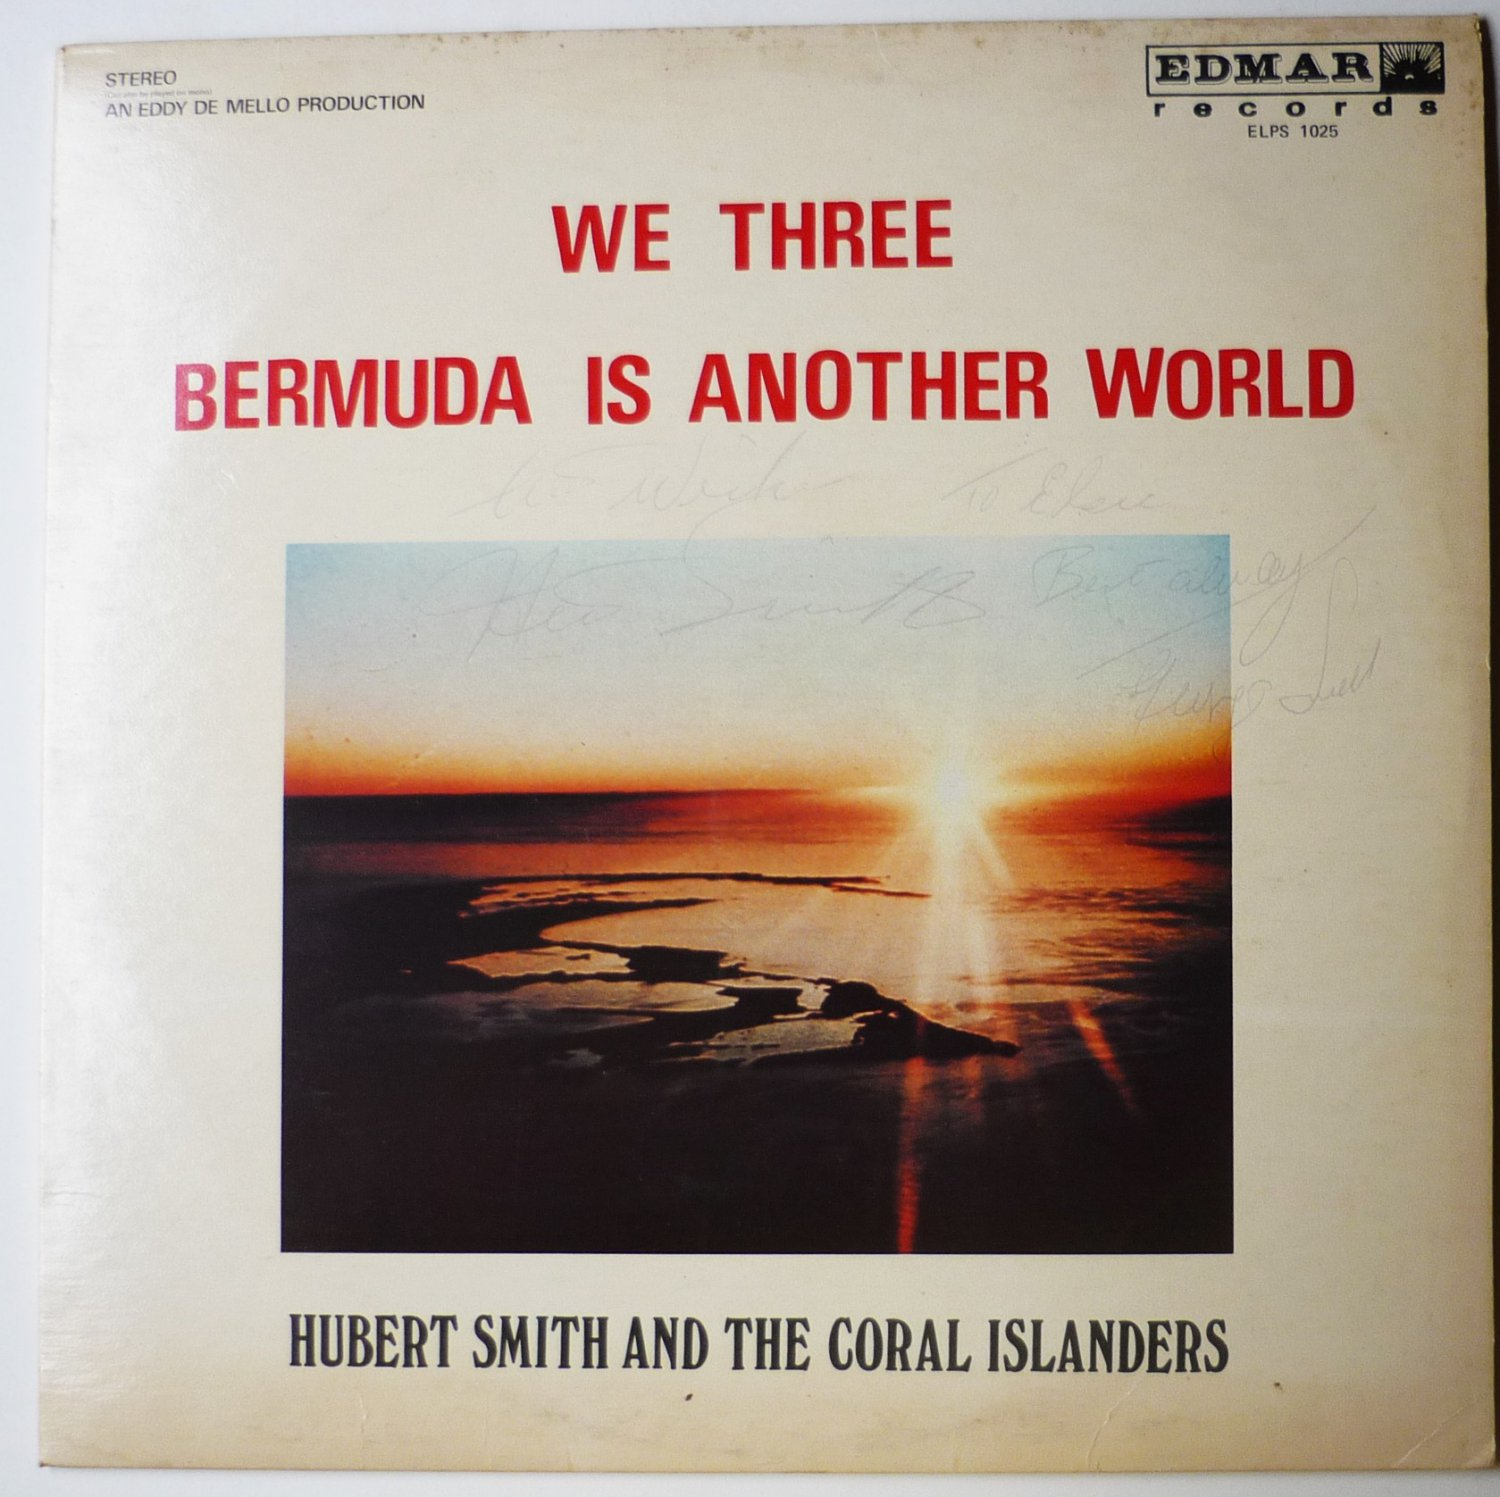 We Three - Bermuda Is Another World Autographed lp by Hubert Smith